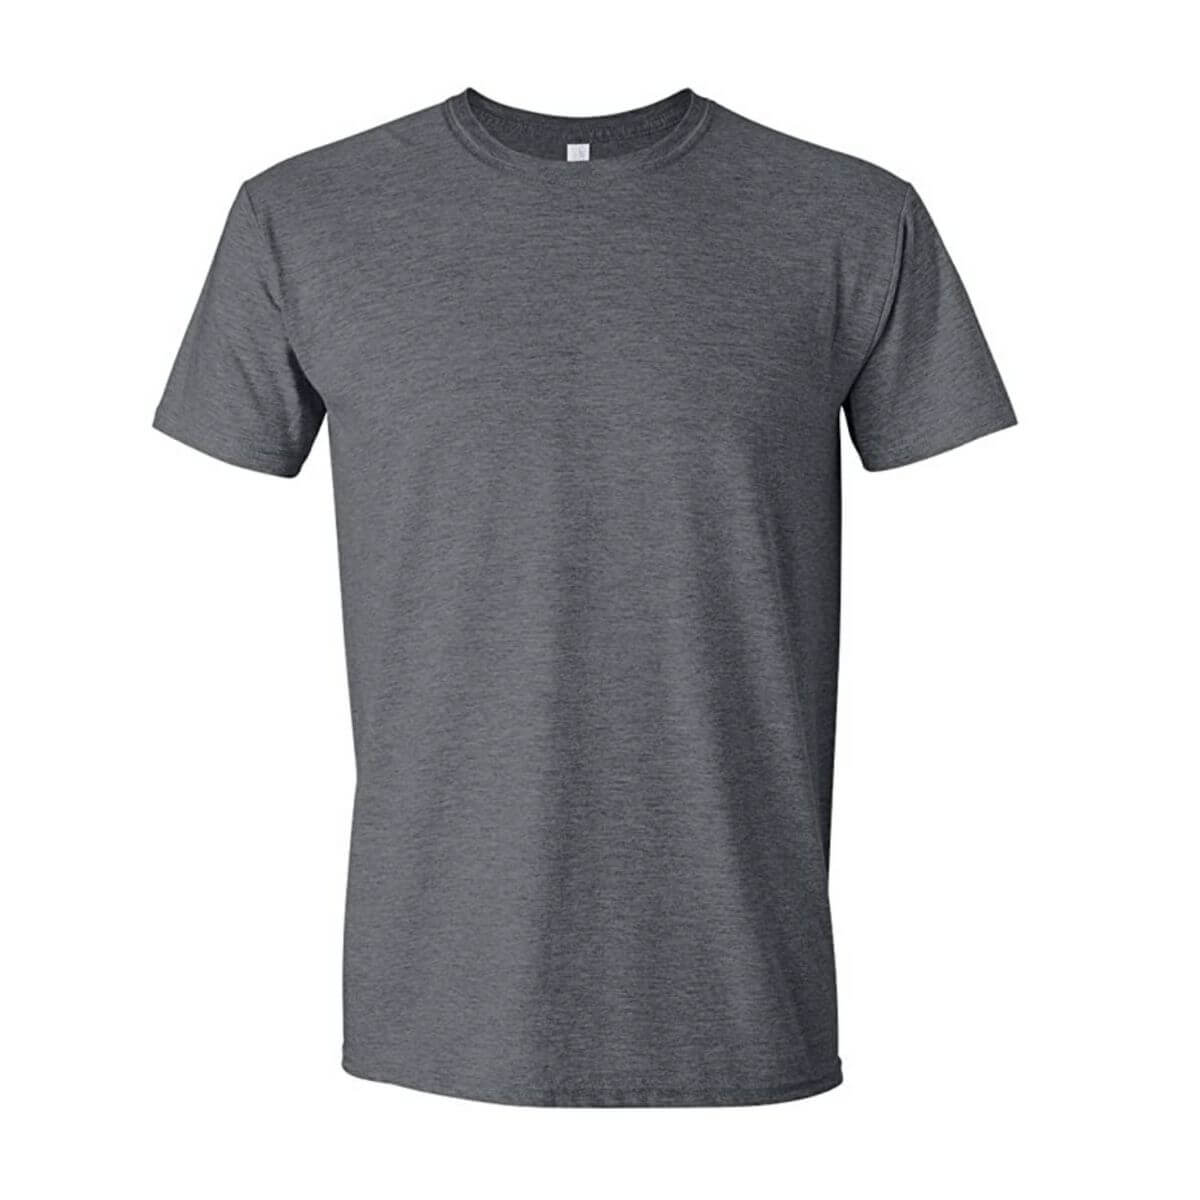 Grey short-sleeve t-shirt.